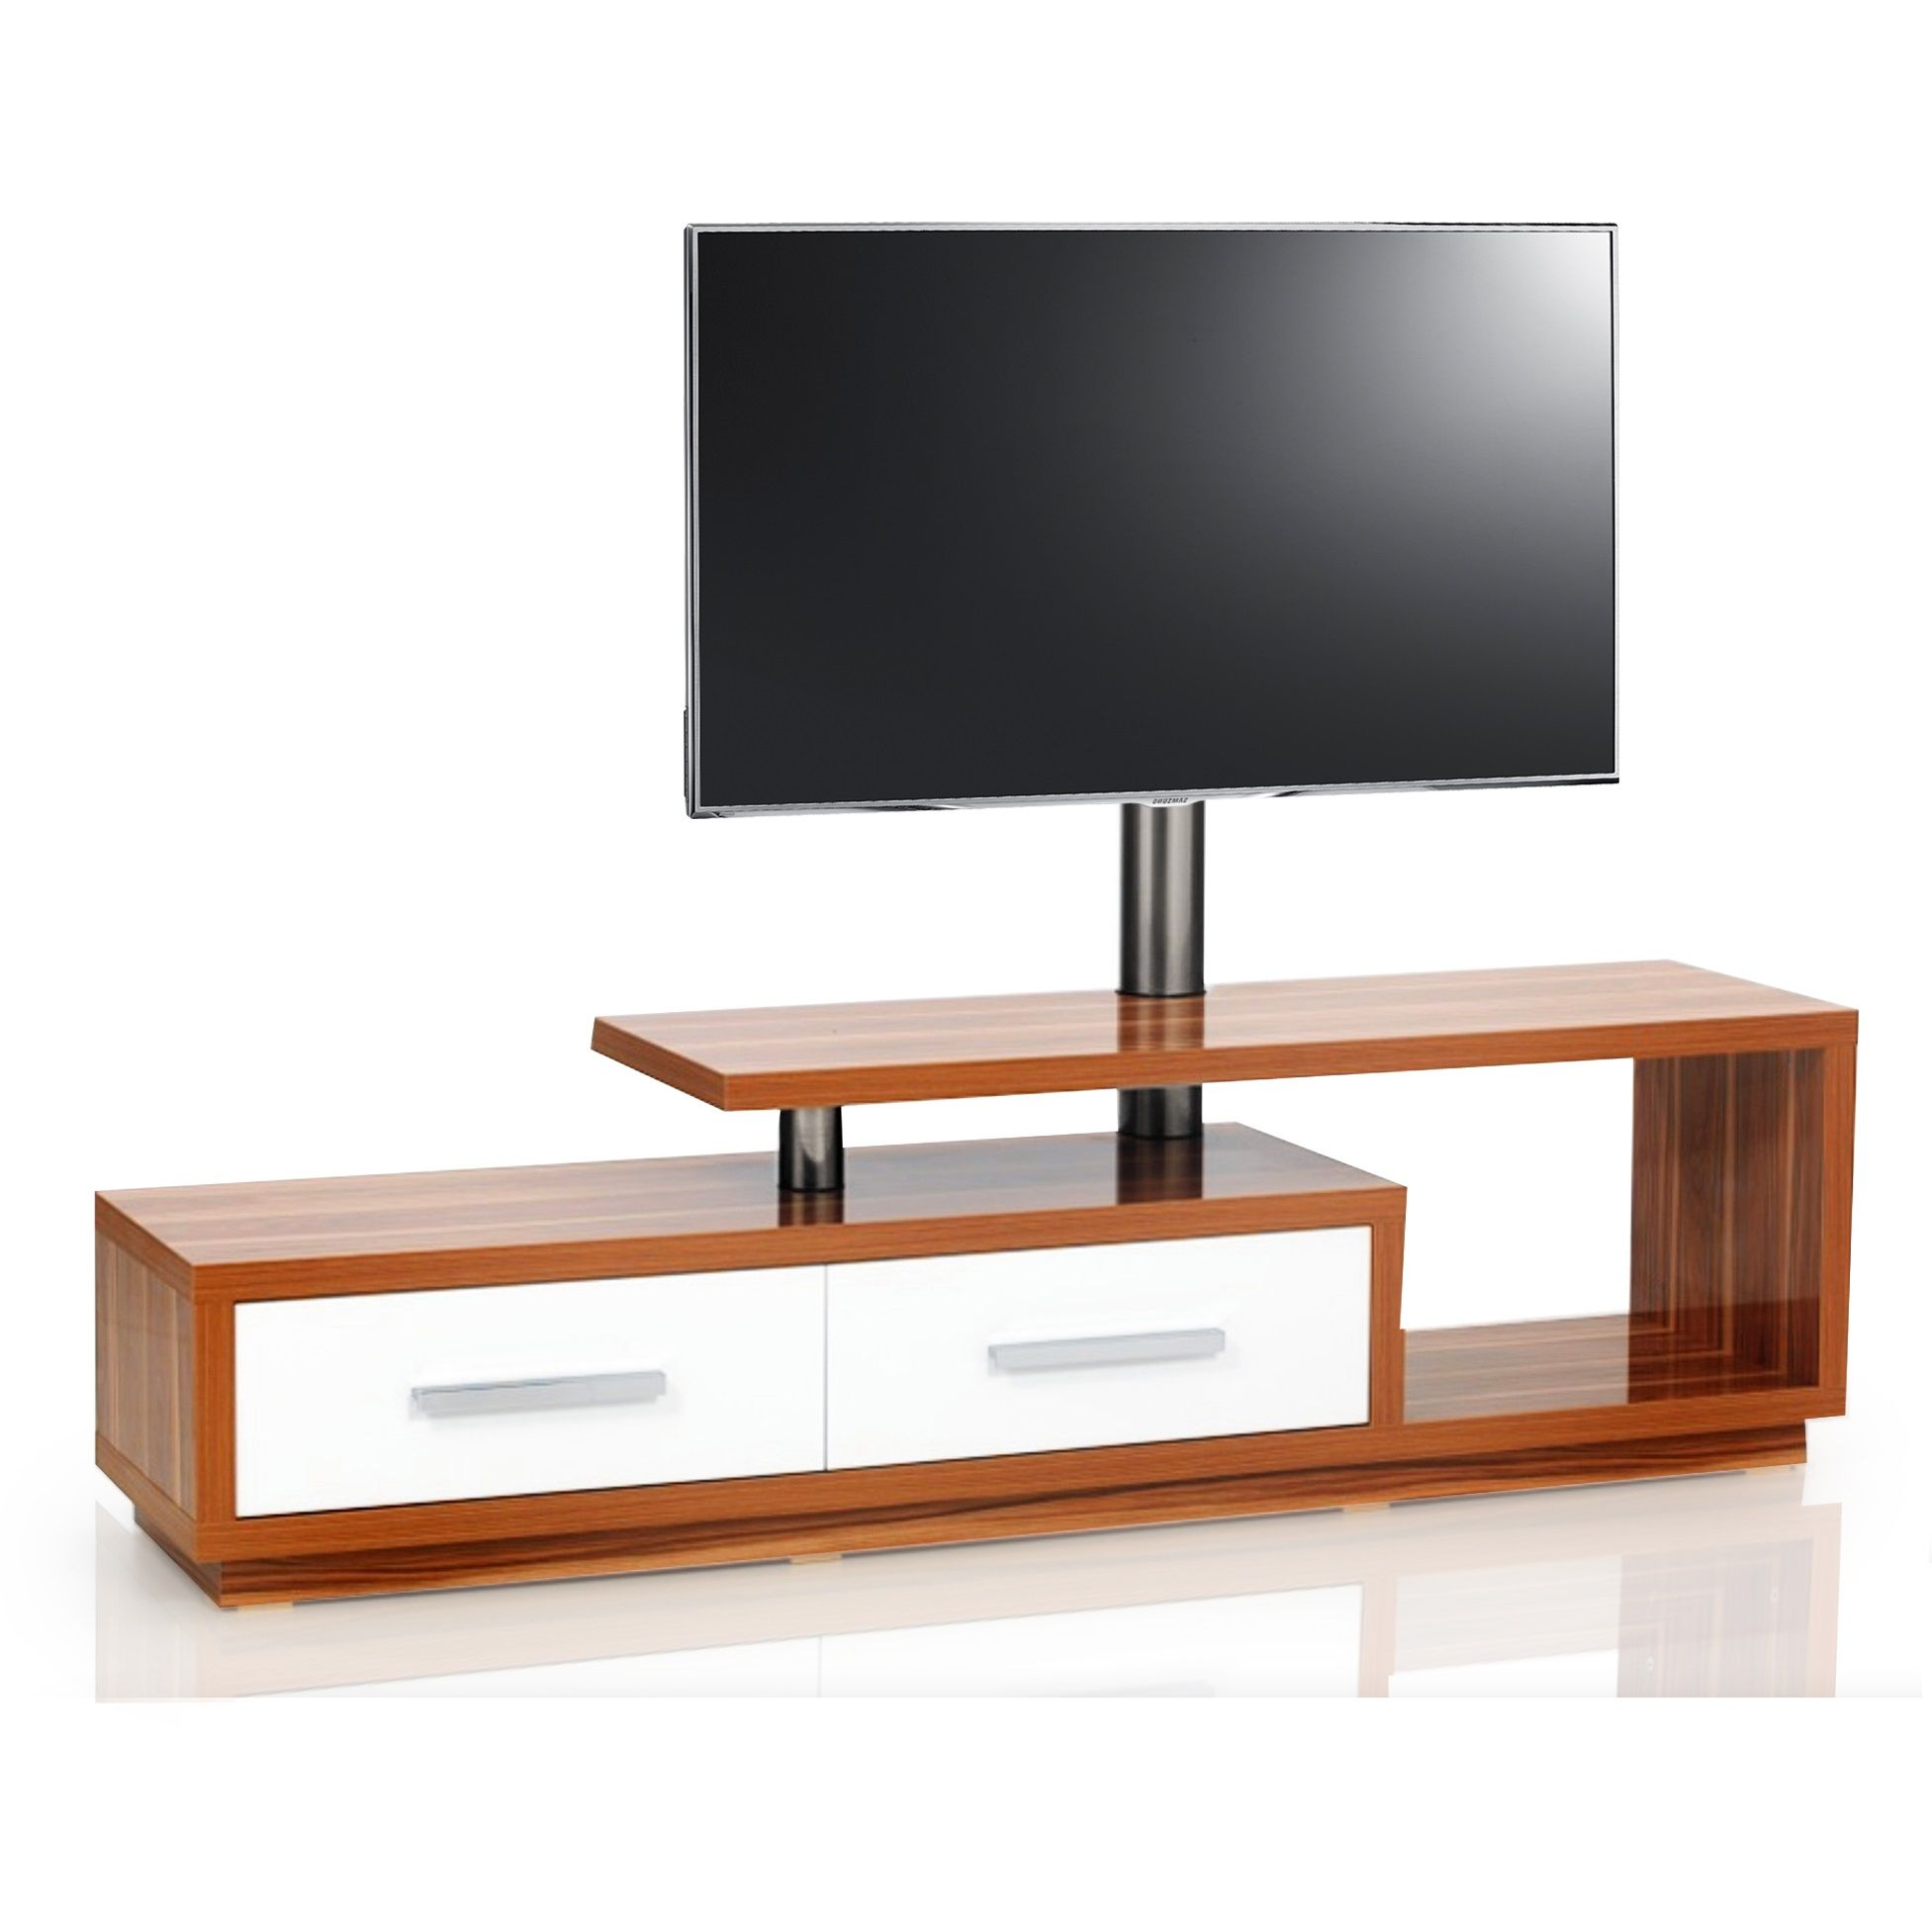 Stunning Tables De Television Contemporary Joshkrajcik Us  # Photos Catalogues Table Tv Ecrans Plat